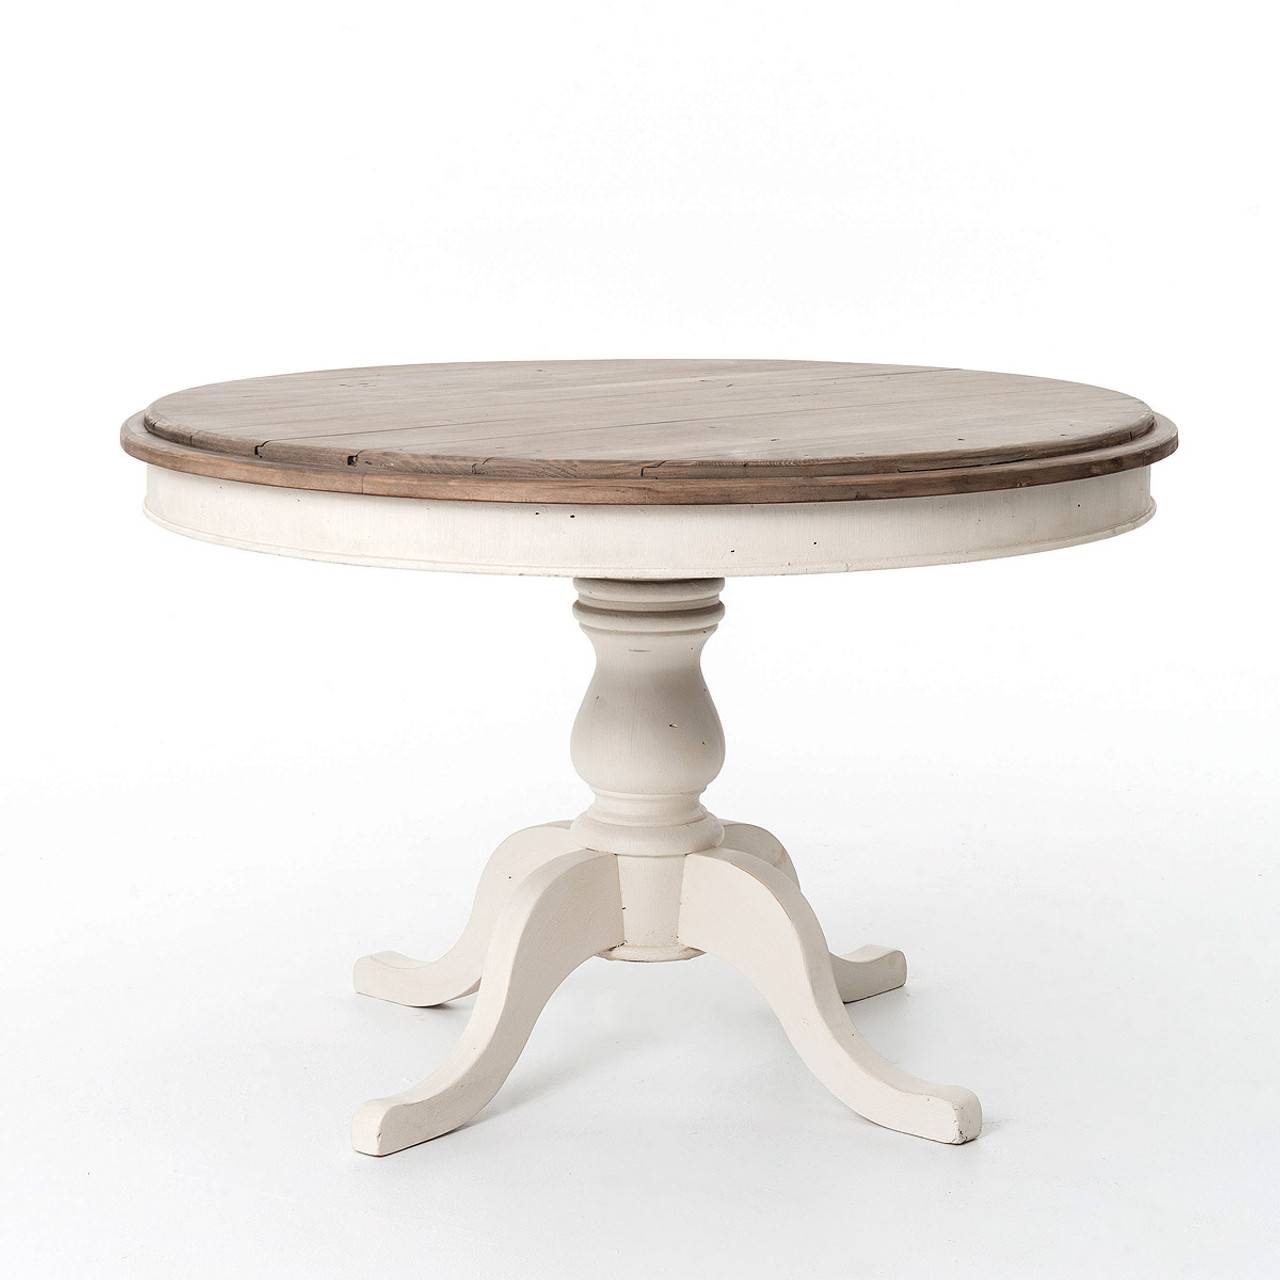 Cottage Round Pedestal Kitchen Table 47\